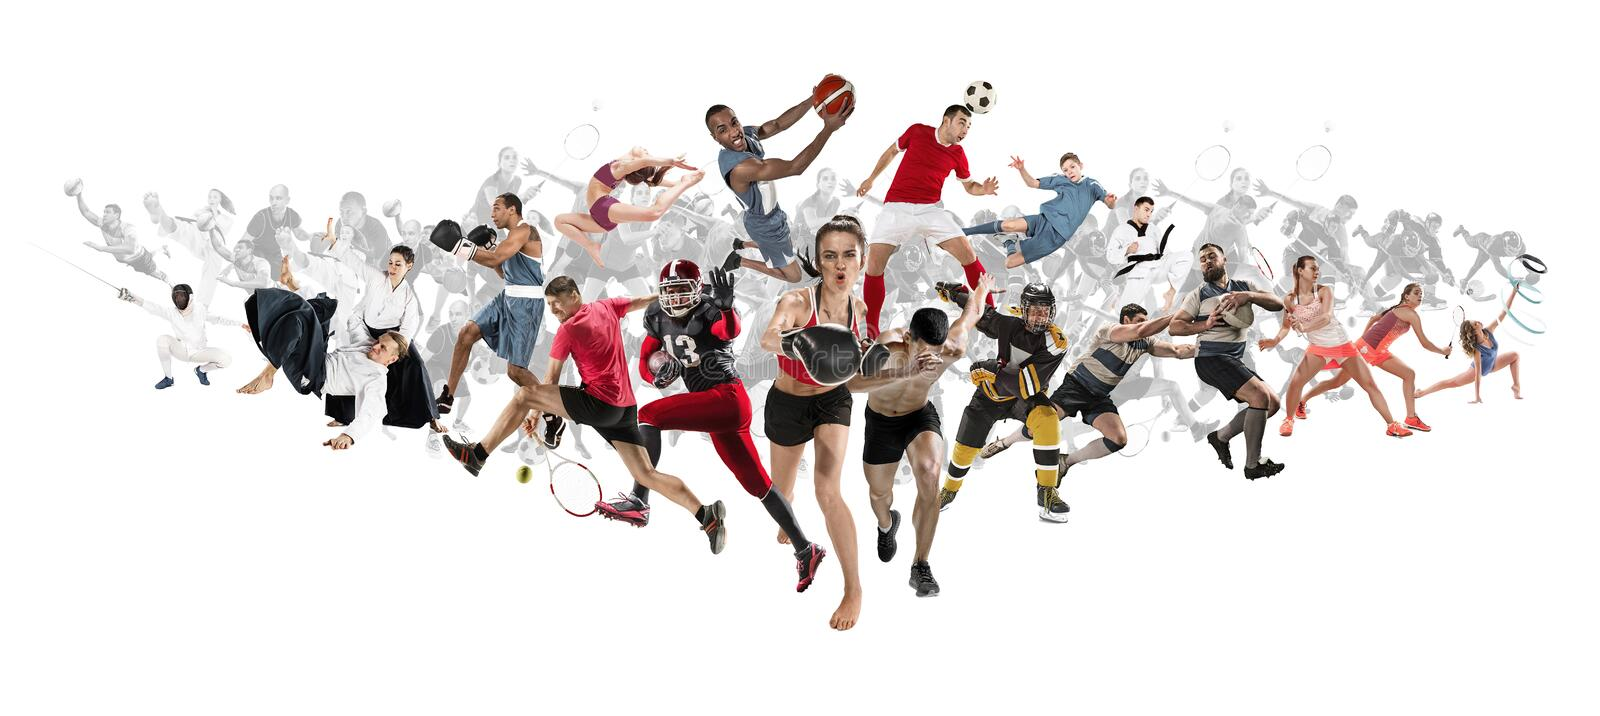 Folâtrez le collage au sujet de kickboxing, le football, football américain, basket-ball, hockey sur glace, badminton, le Taekwon photographie stock